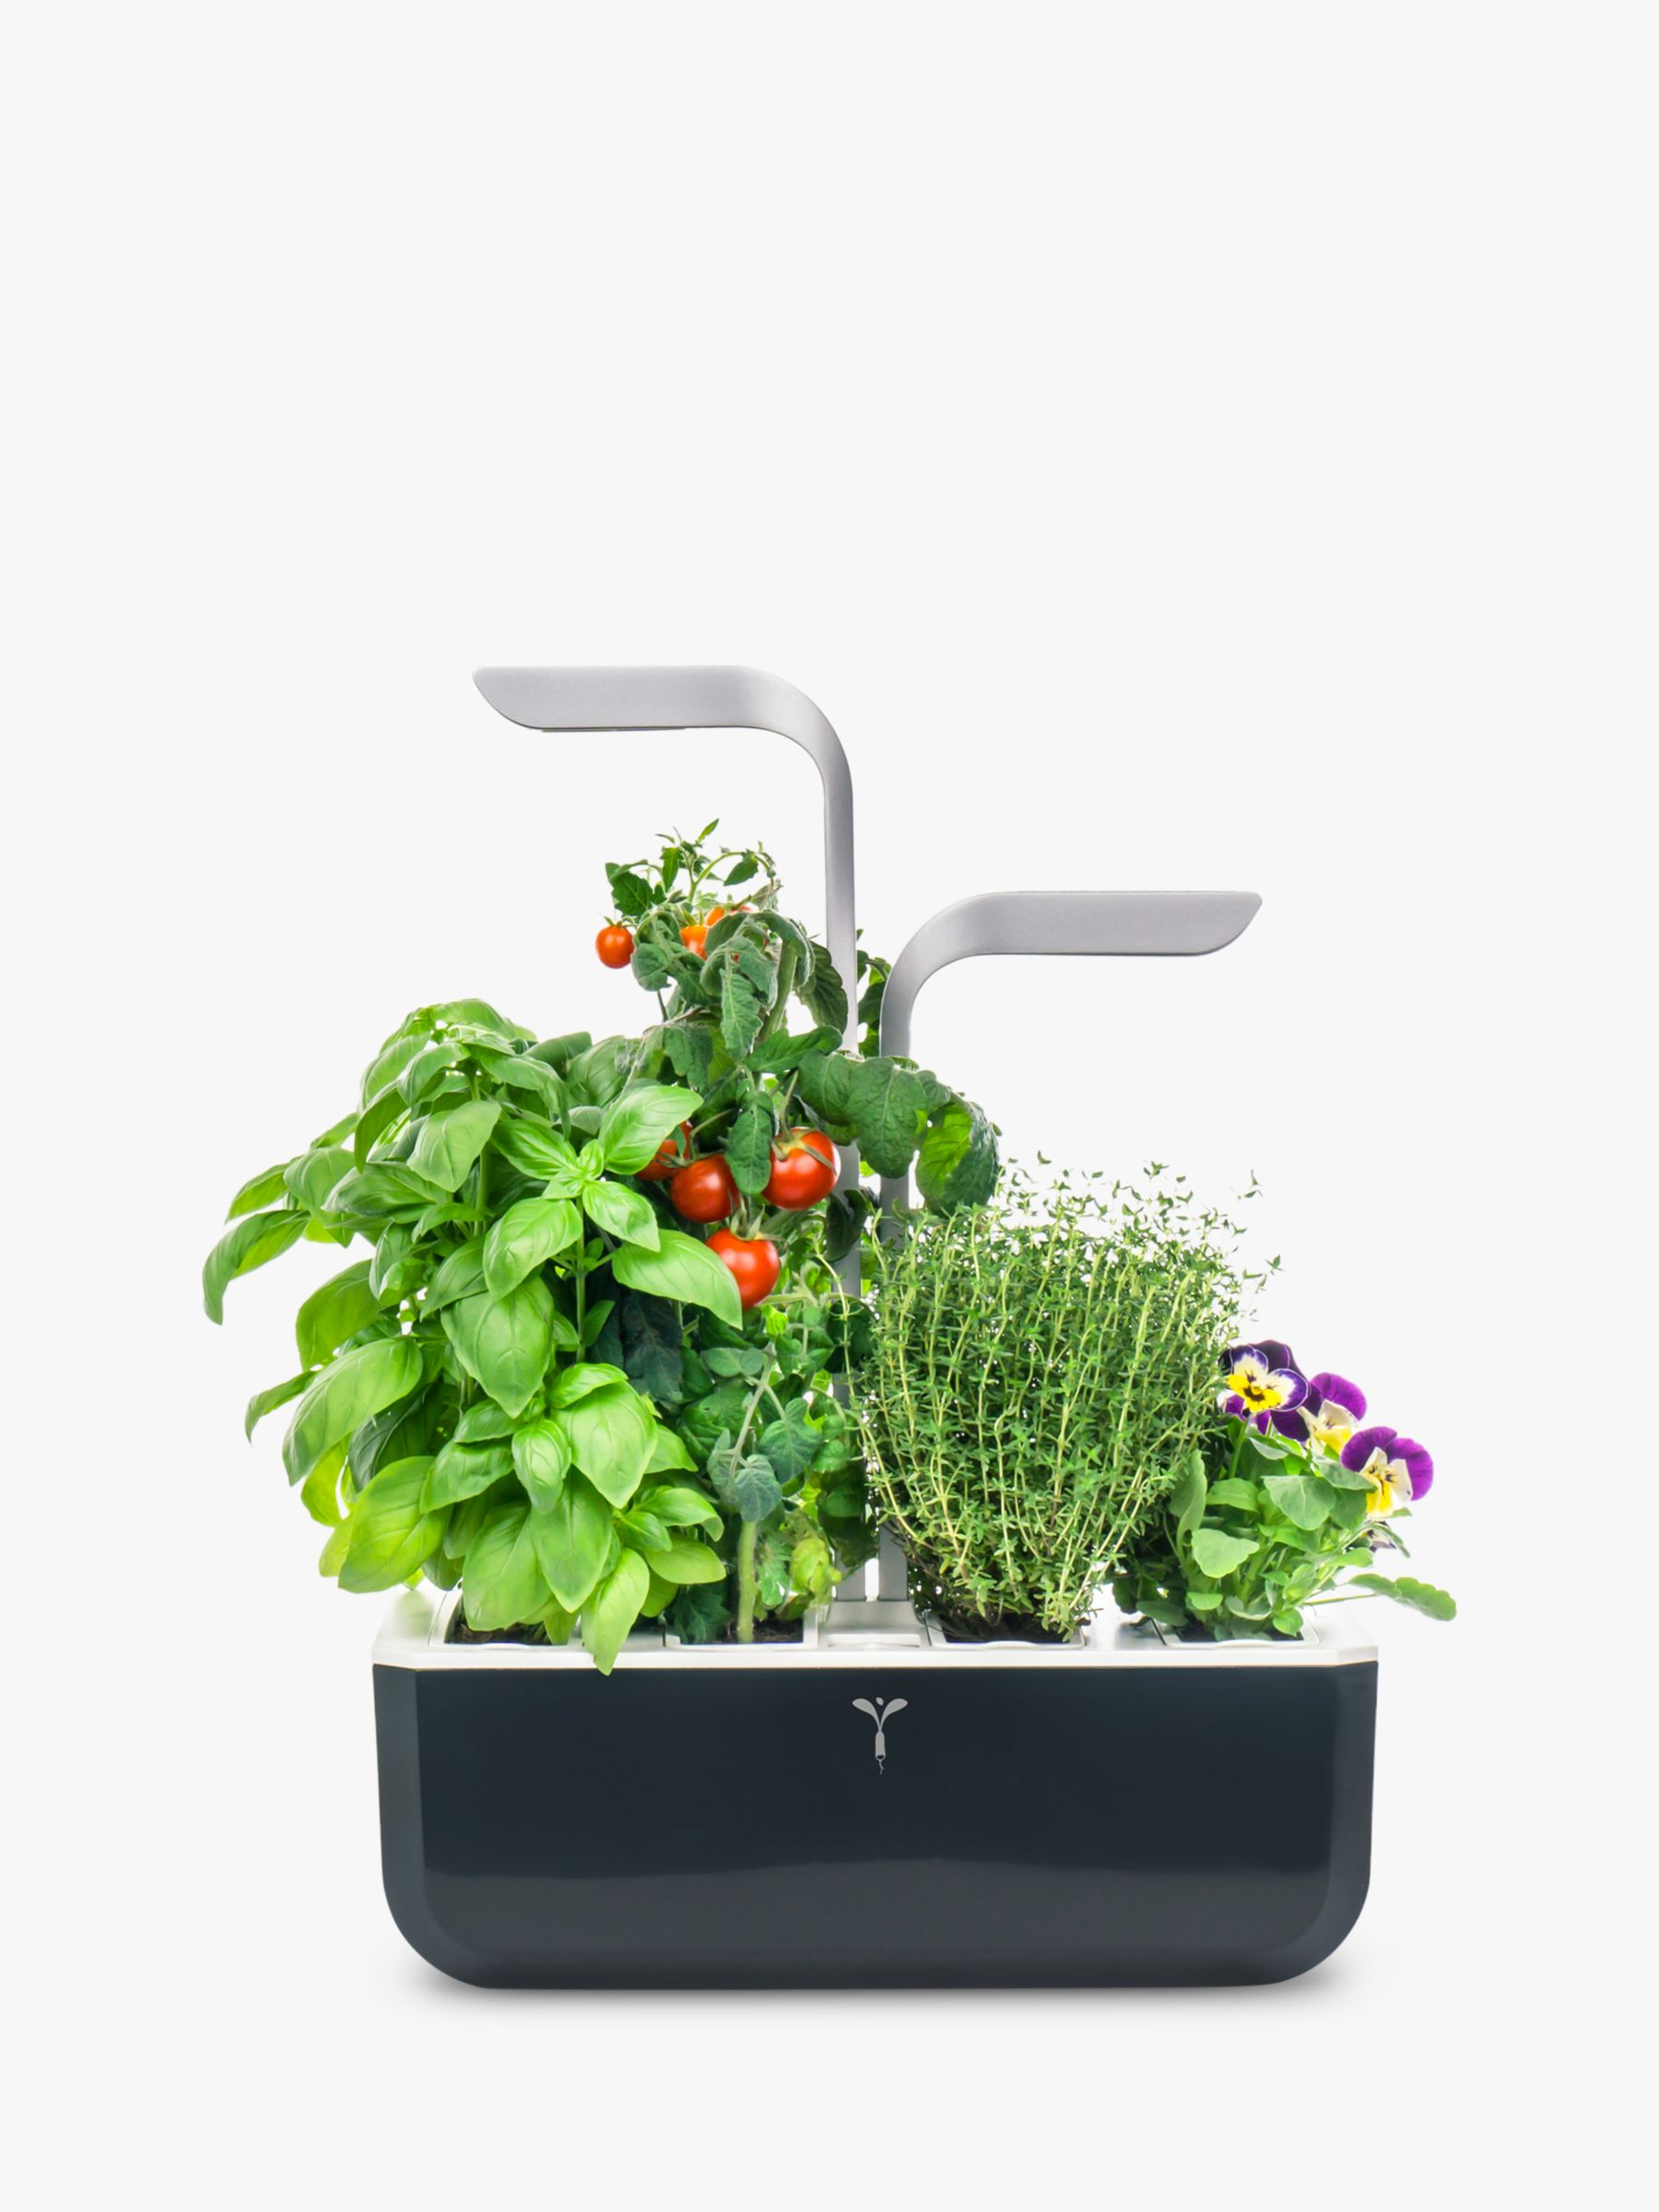 Veritable Indoor Garden Smart Edition 4 Slot Herb & Plant Holder, Black